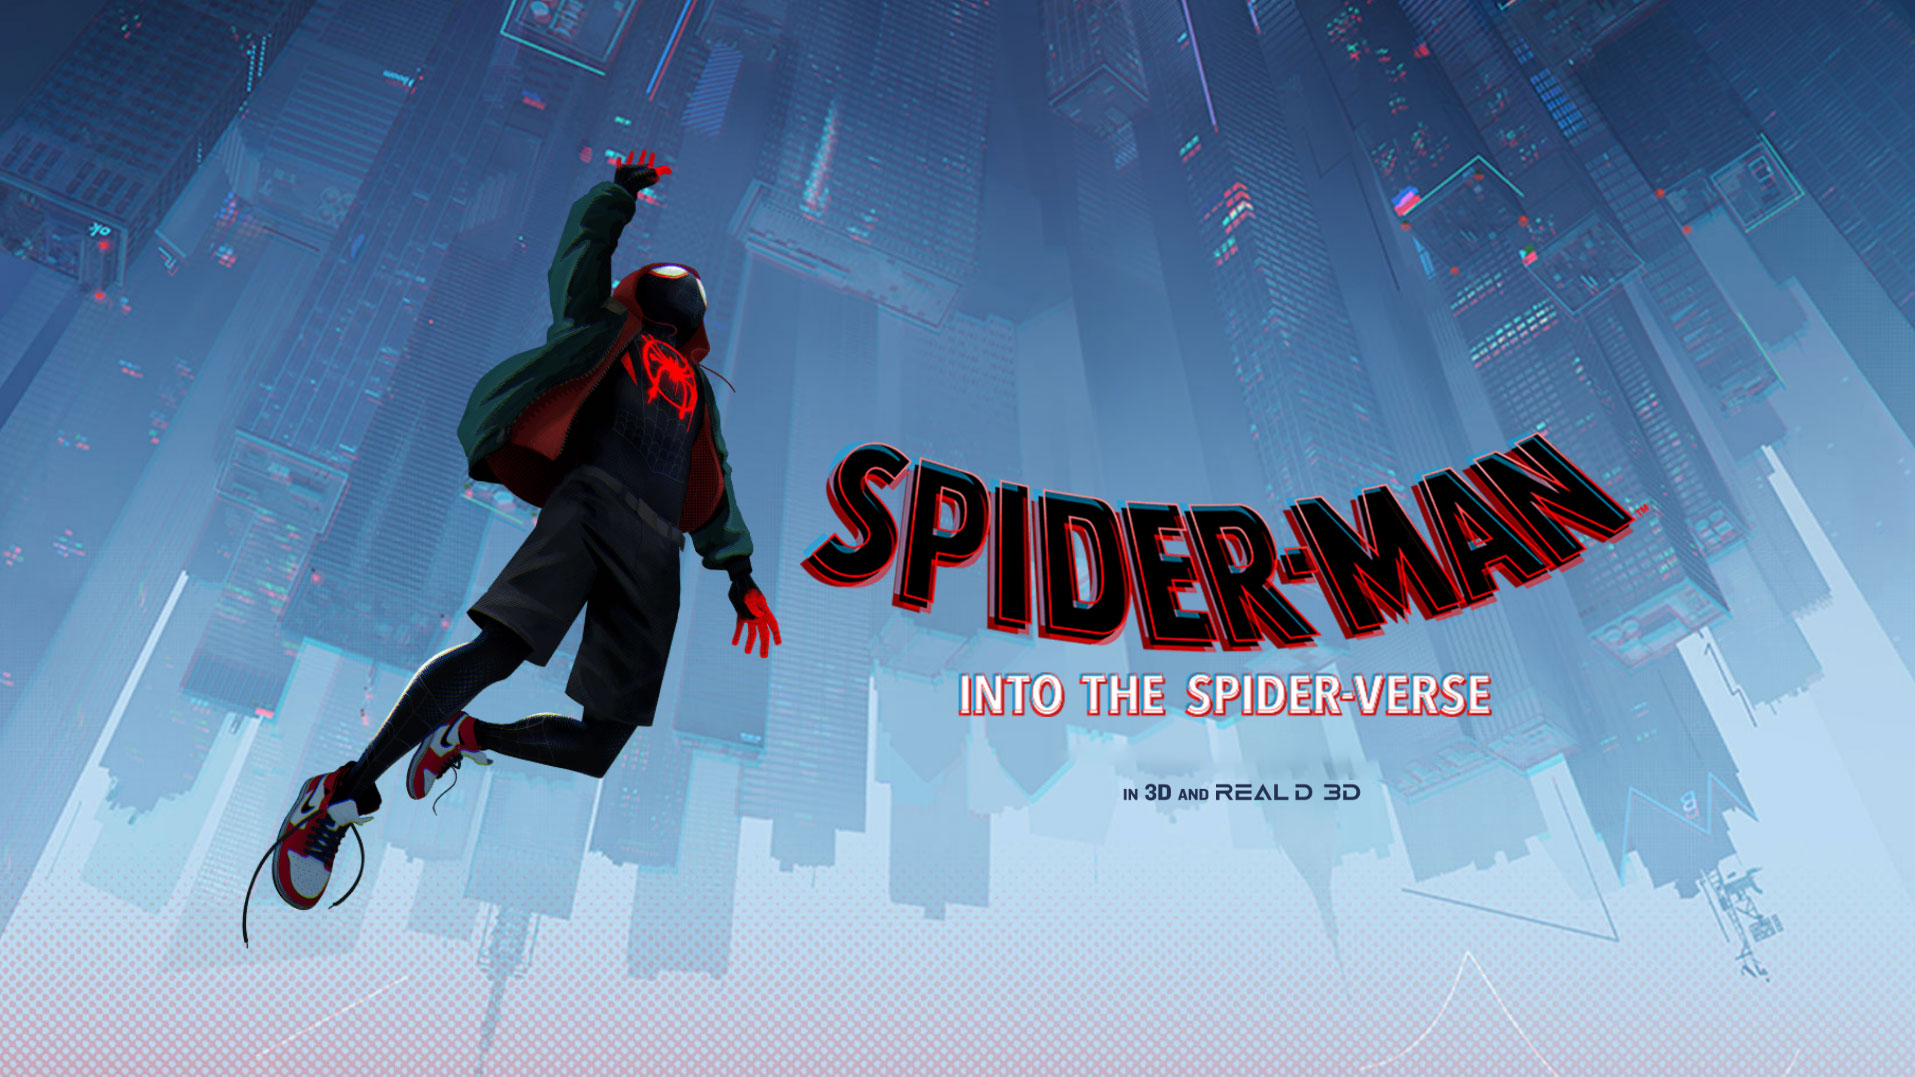 'Spider-Man™: Into the Spider-Verse' - landscape artwork